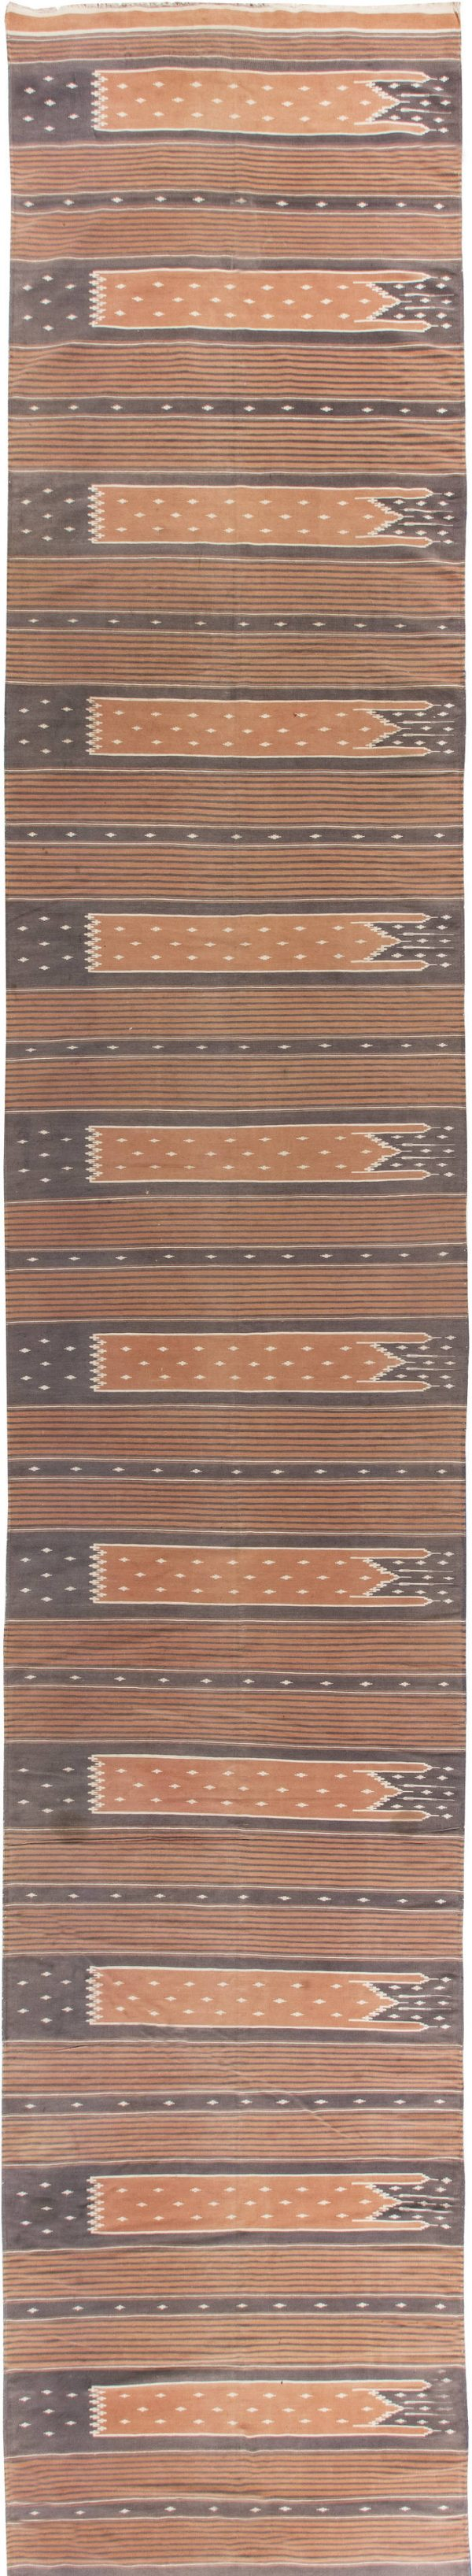 Dhurrie indiano do vintage Runner BB6285